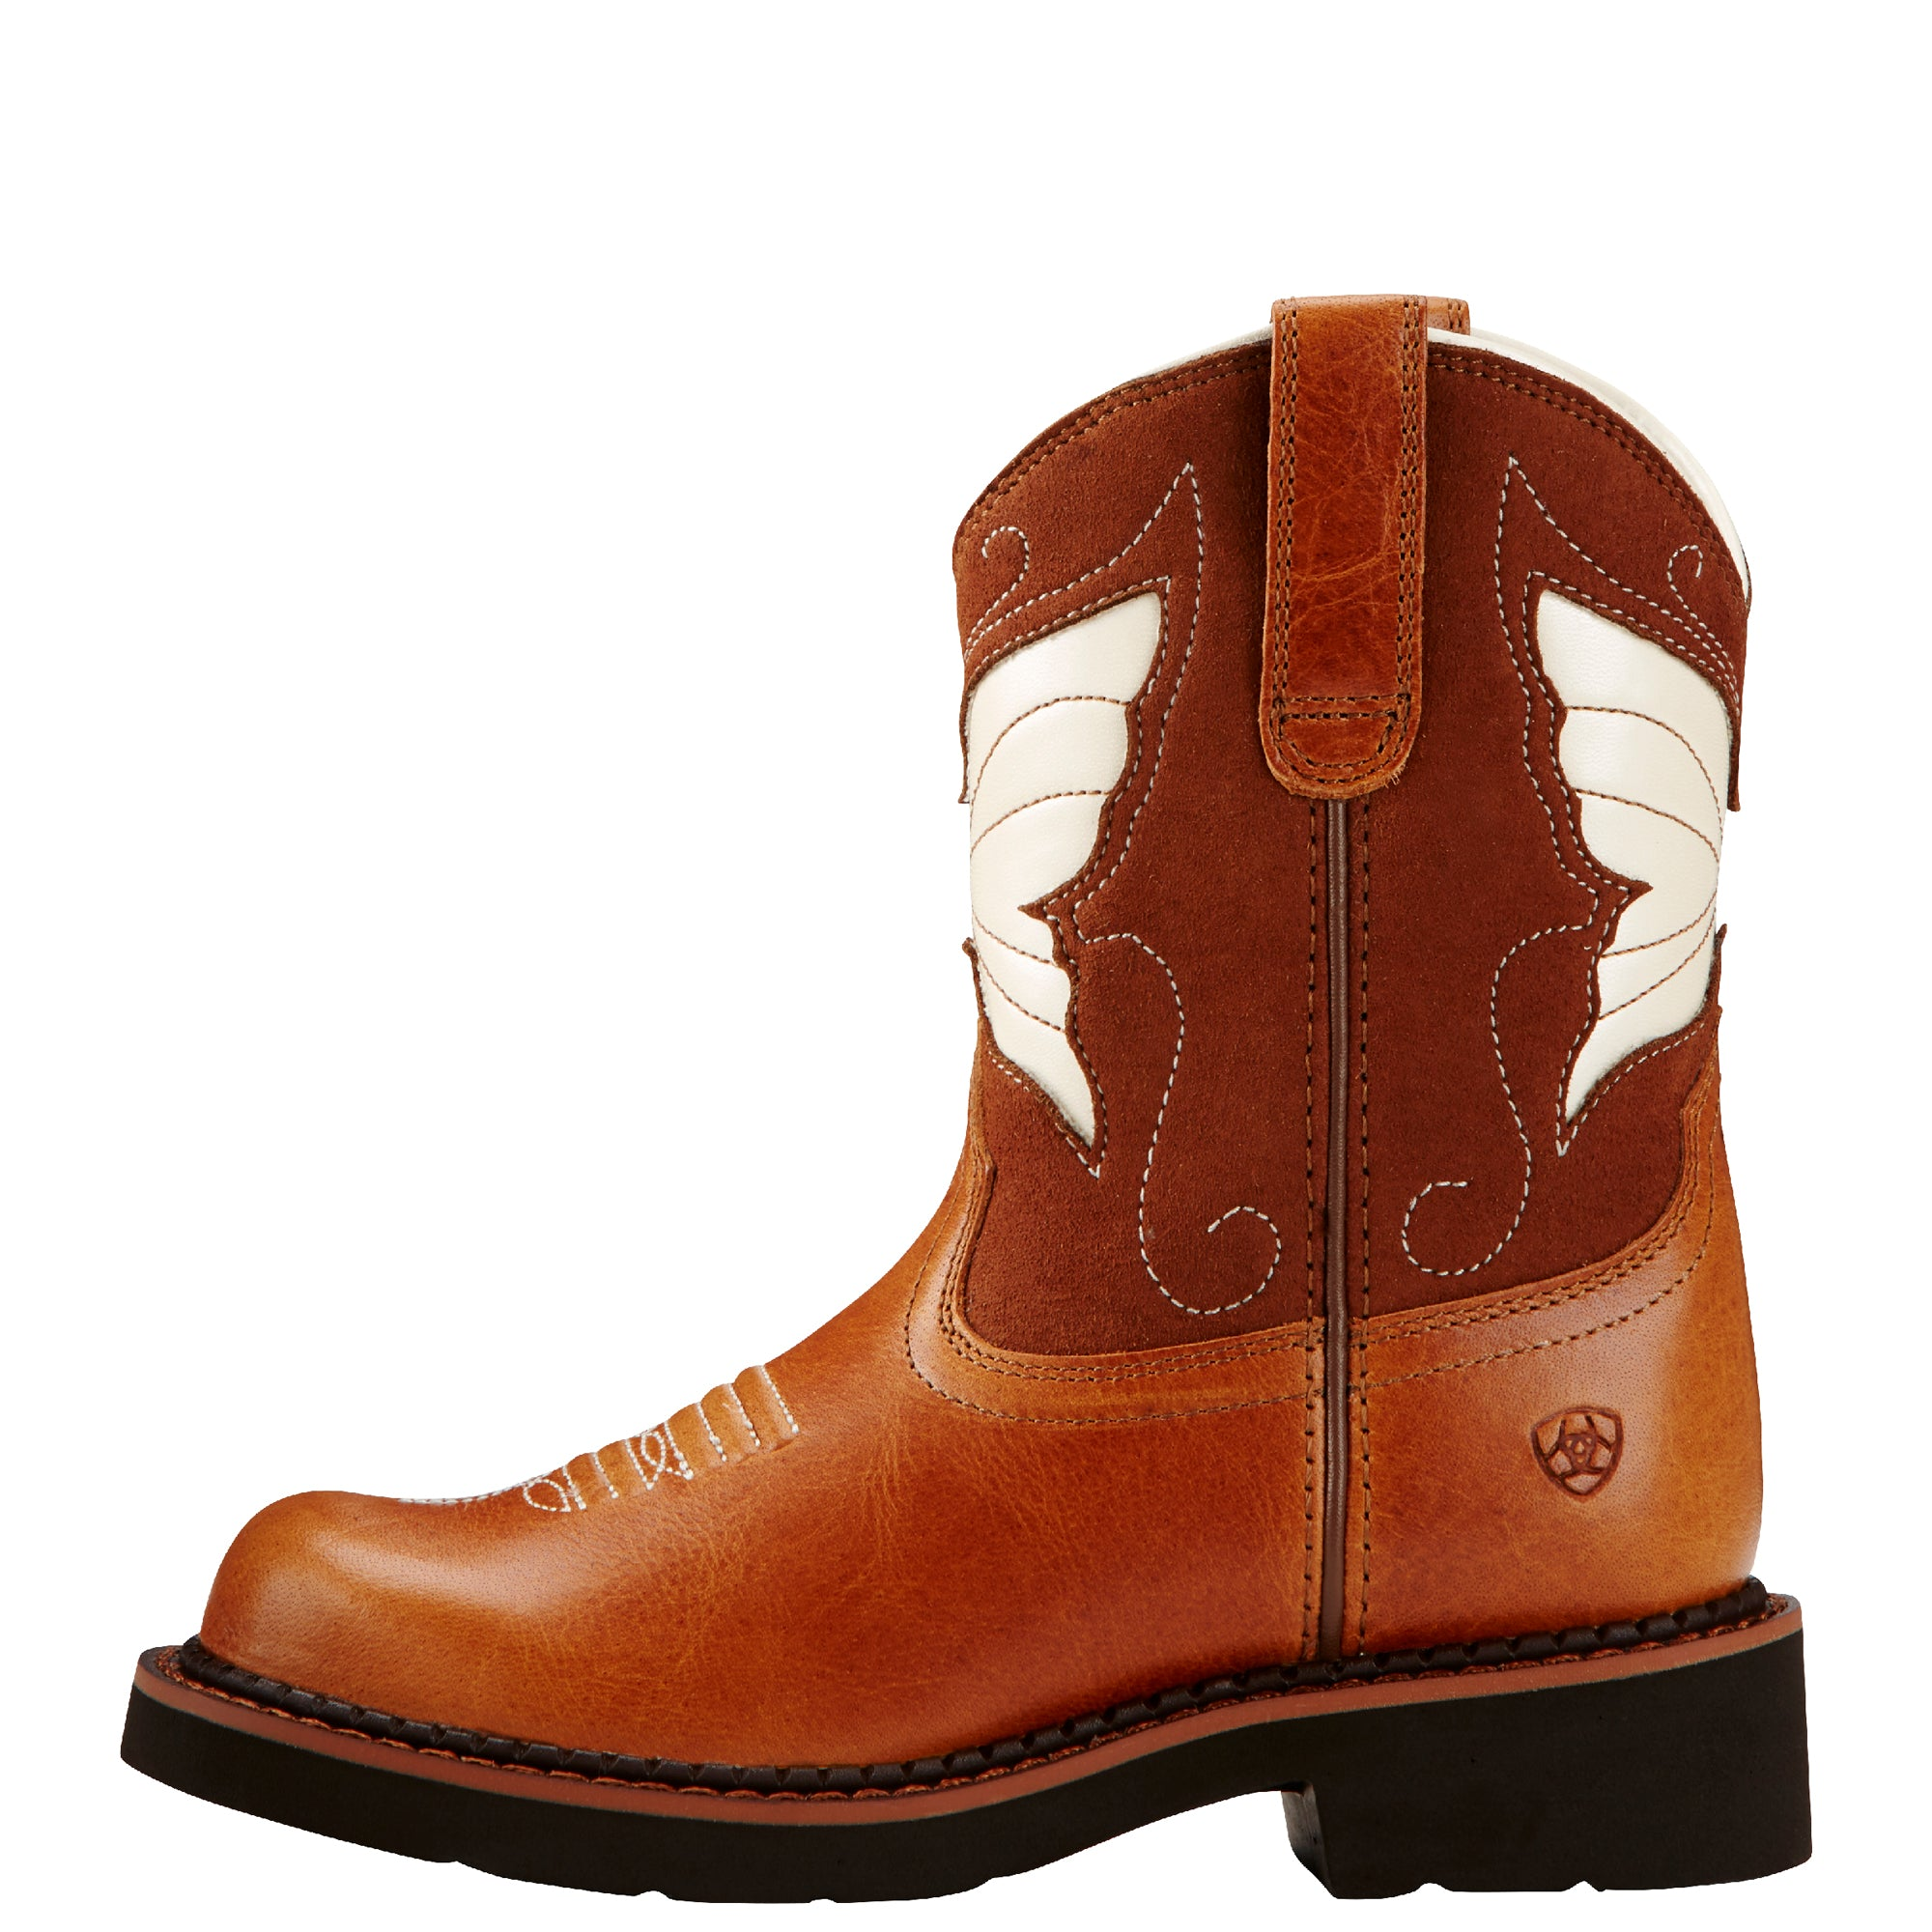 Ariat Kids Fatbaby Wings Boots